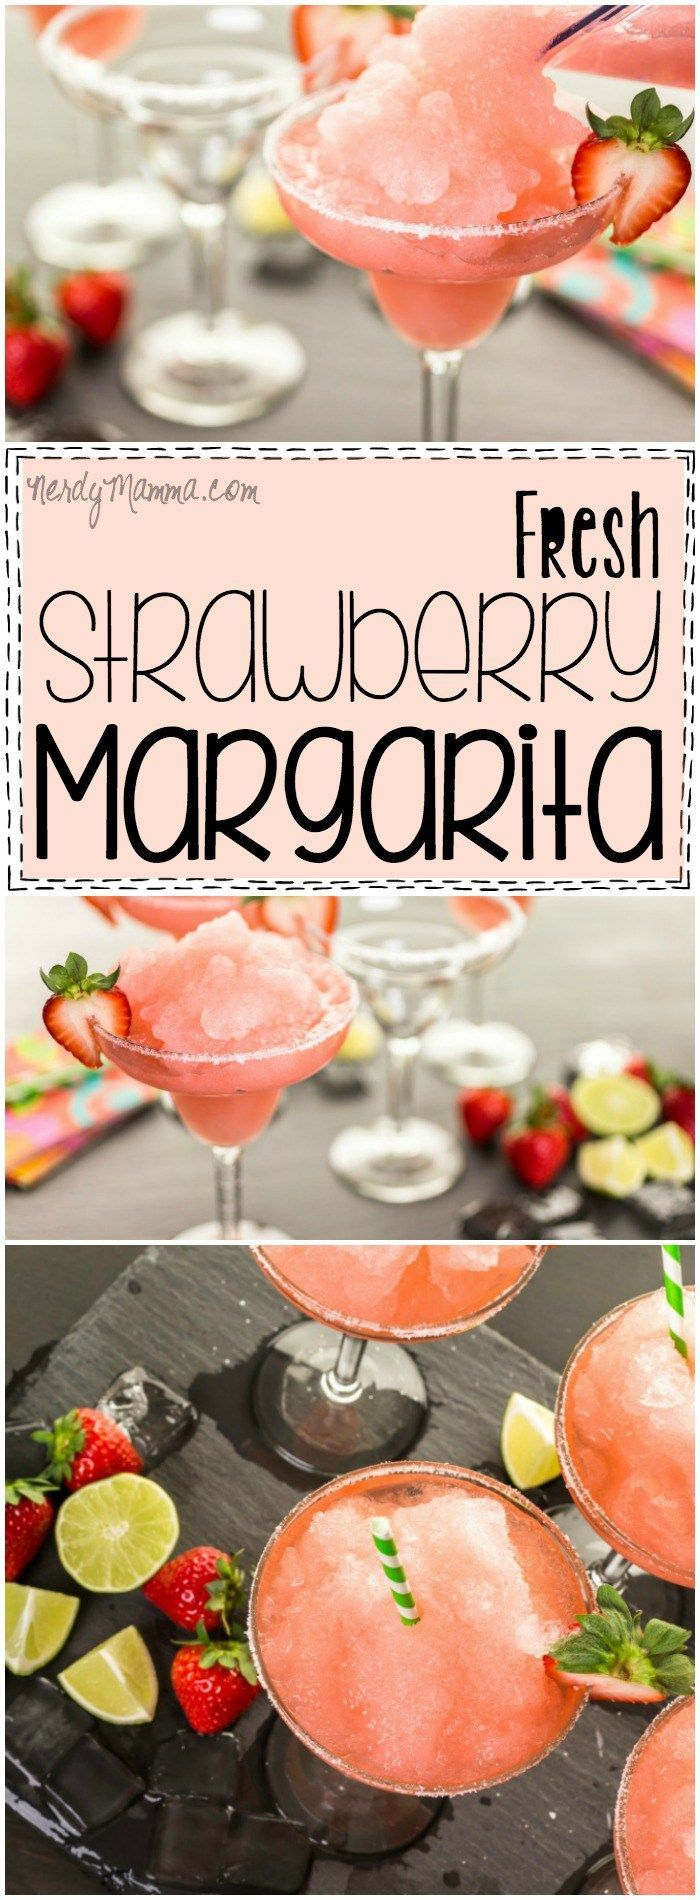 Have you ever had a margarita made from fresh strawberries Me neither! I can't wait to try this recipe, though! Definitely saving this pin!